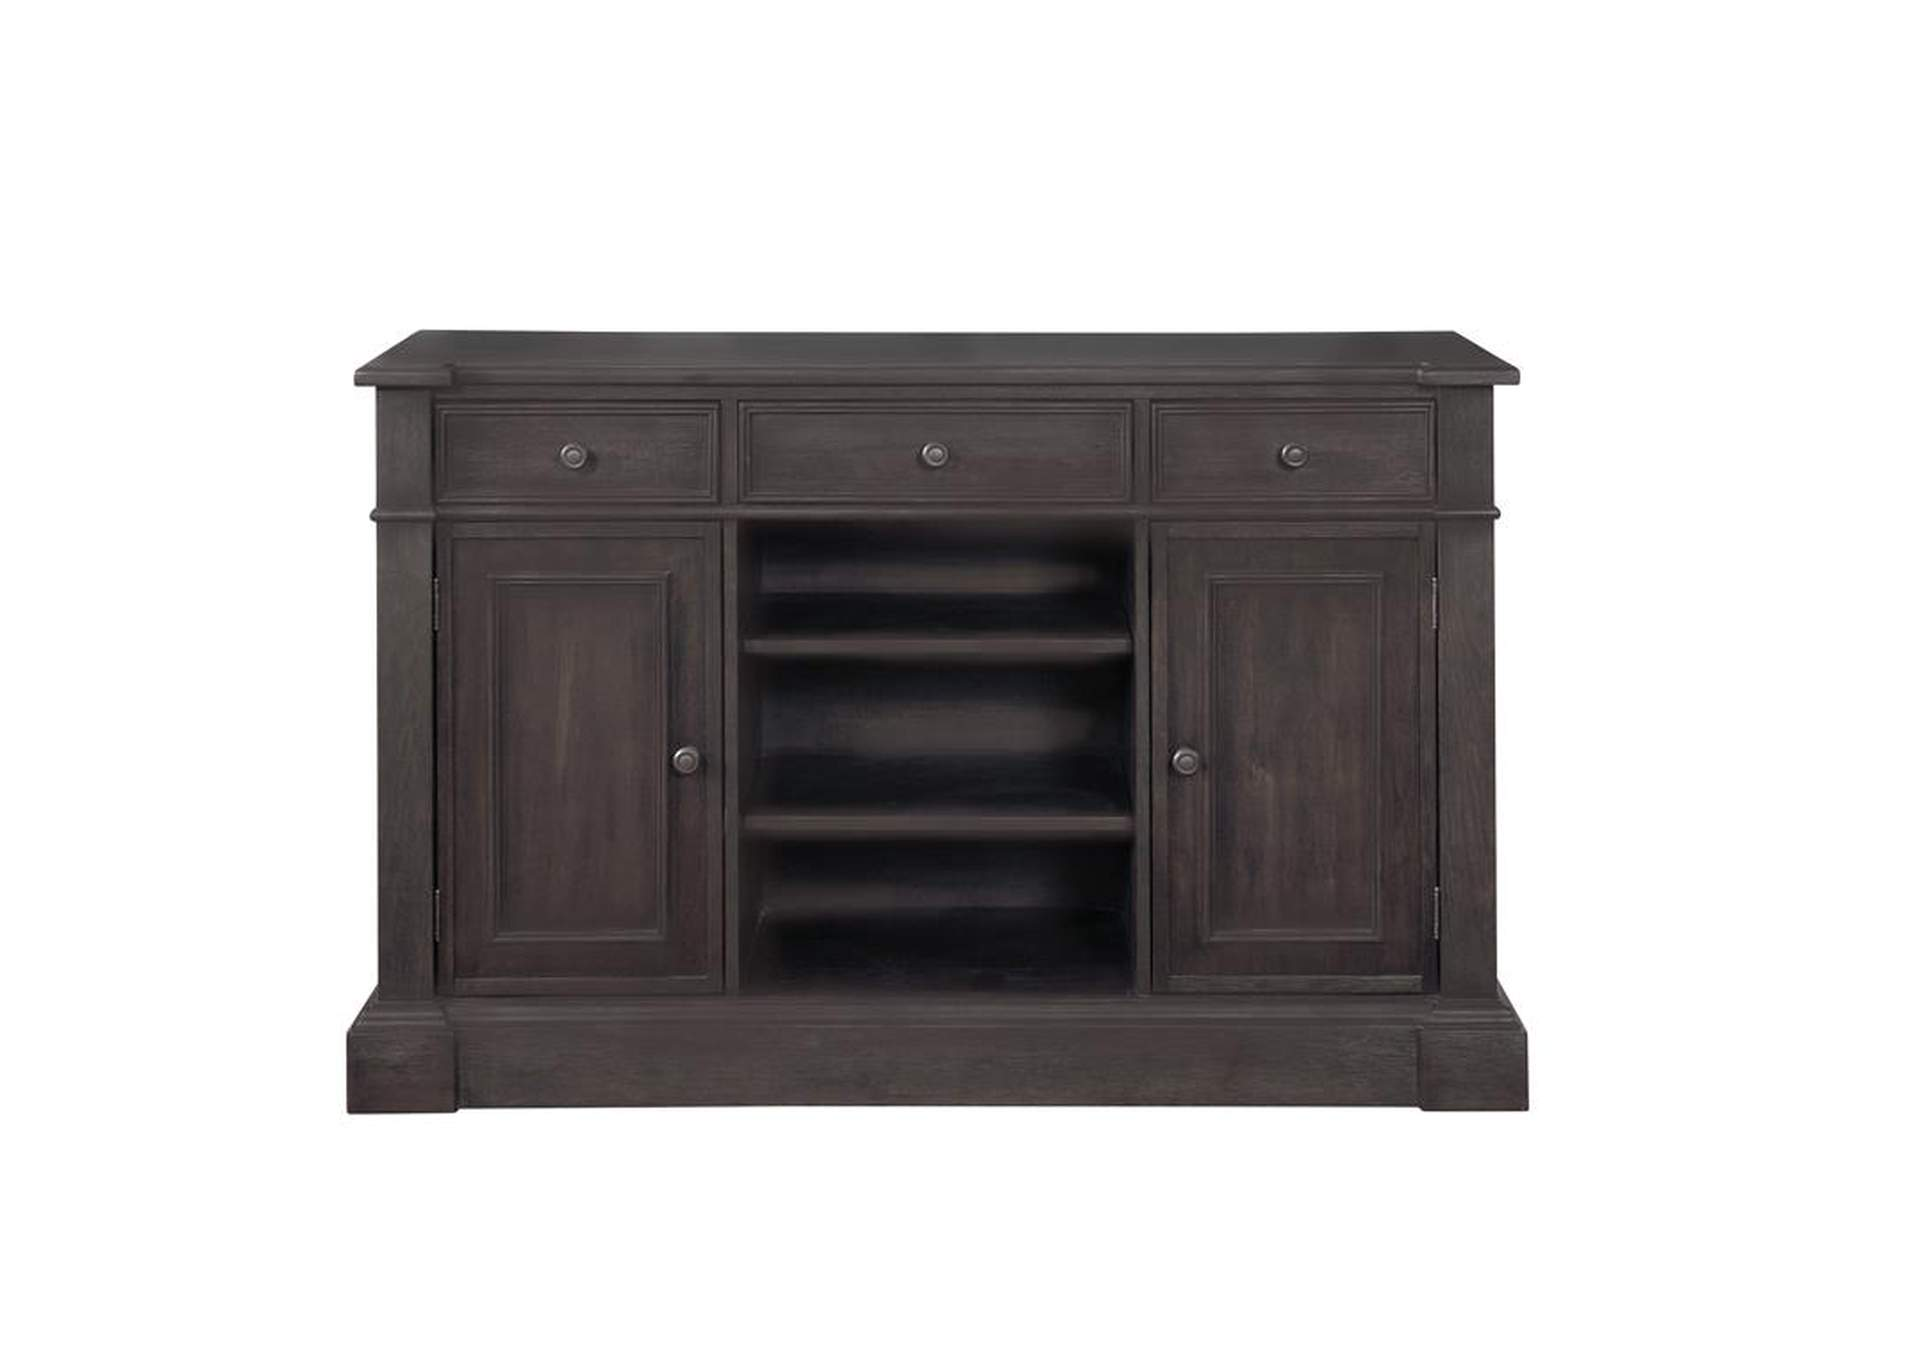 Phelps Antique Noir Server,Coaster Furniture